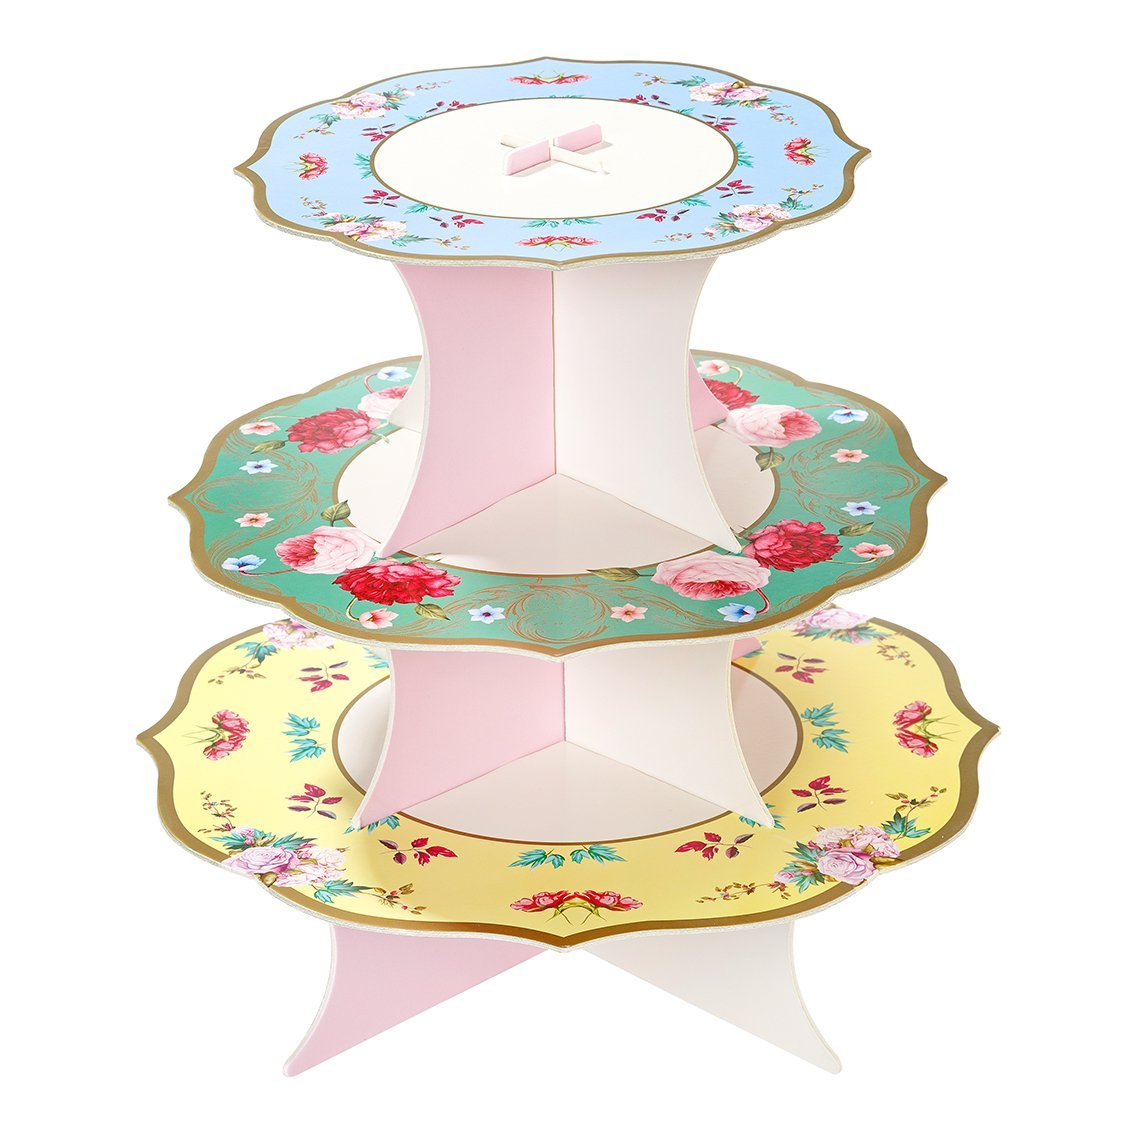 Flower Double-sided Cake Stand 1pc (Add to Your Tea Set)